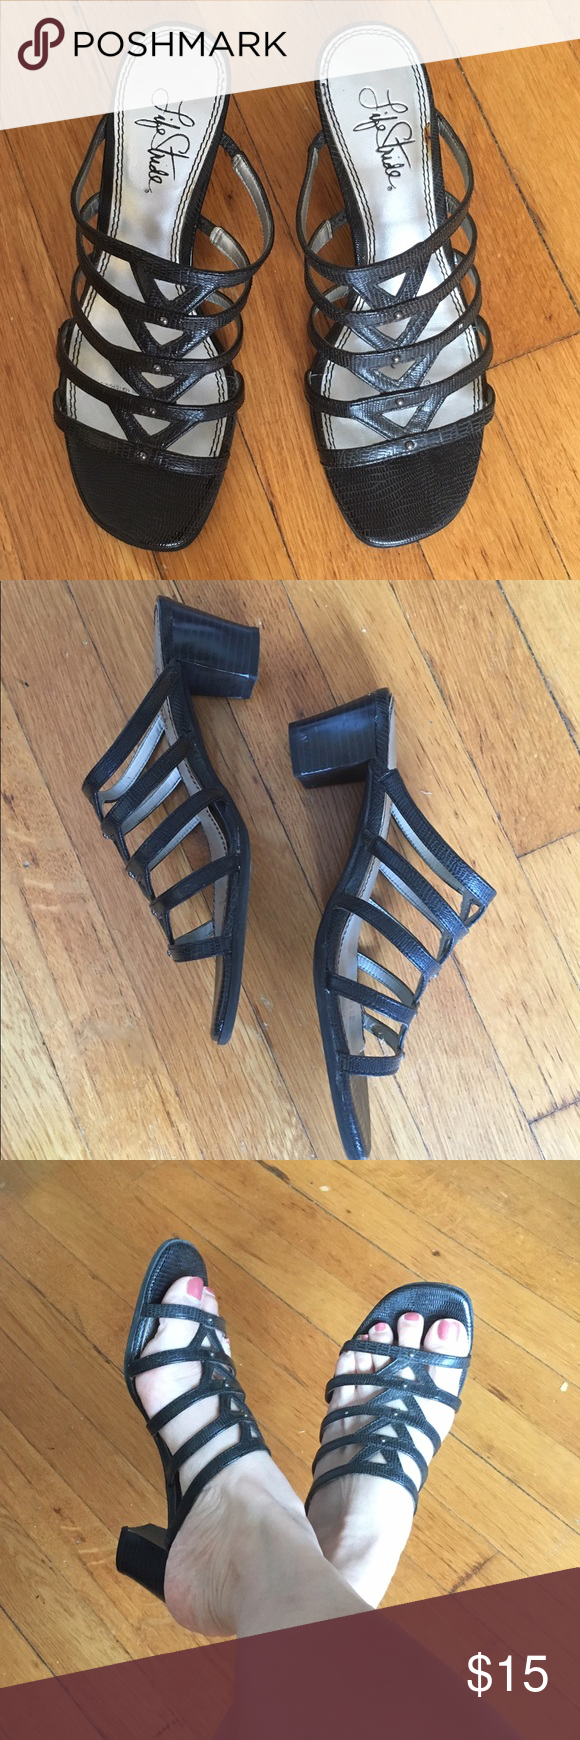 """Life Stride Super Comfy Sandals 2"""" block heels, in good condition. You can wear these sandals all day as they are super comfy & on trend! ✨Buy and two $15 or less items for $25 & save on shipping✨ Life Stride Shoes Sandals"""